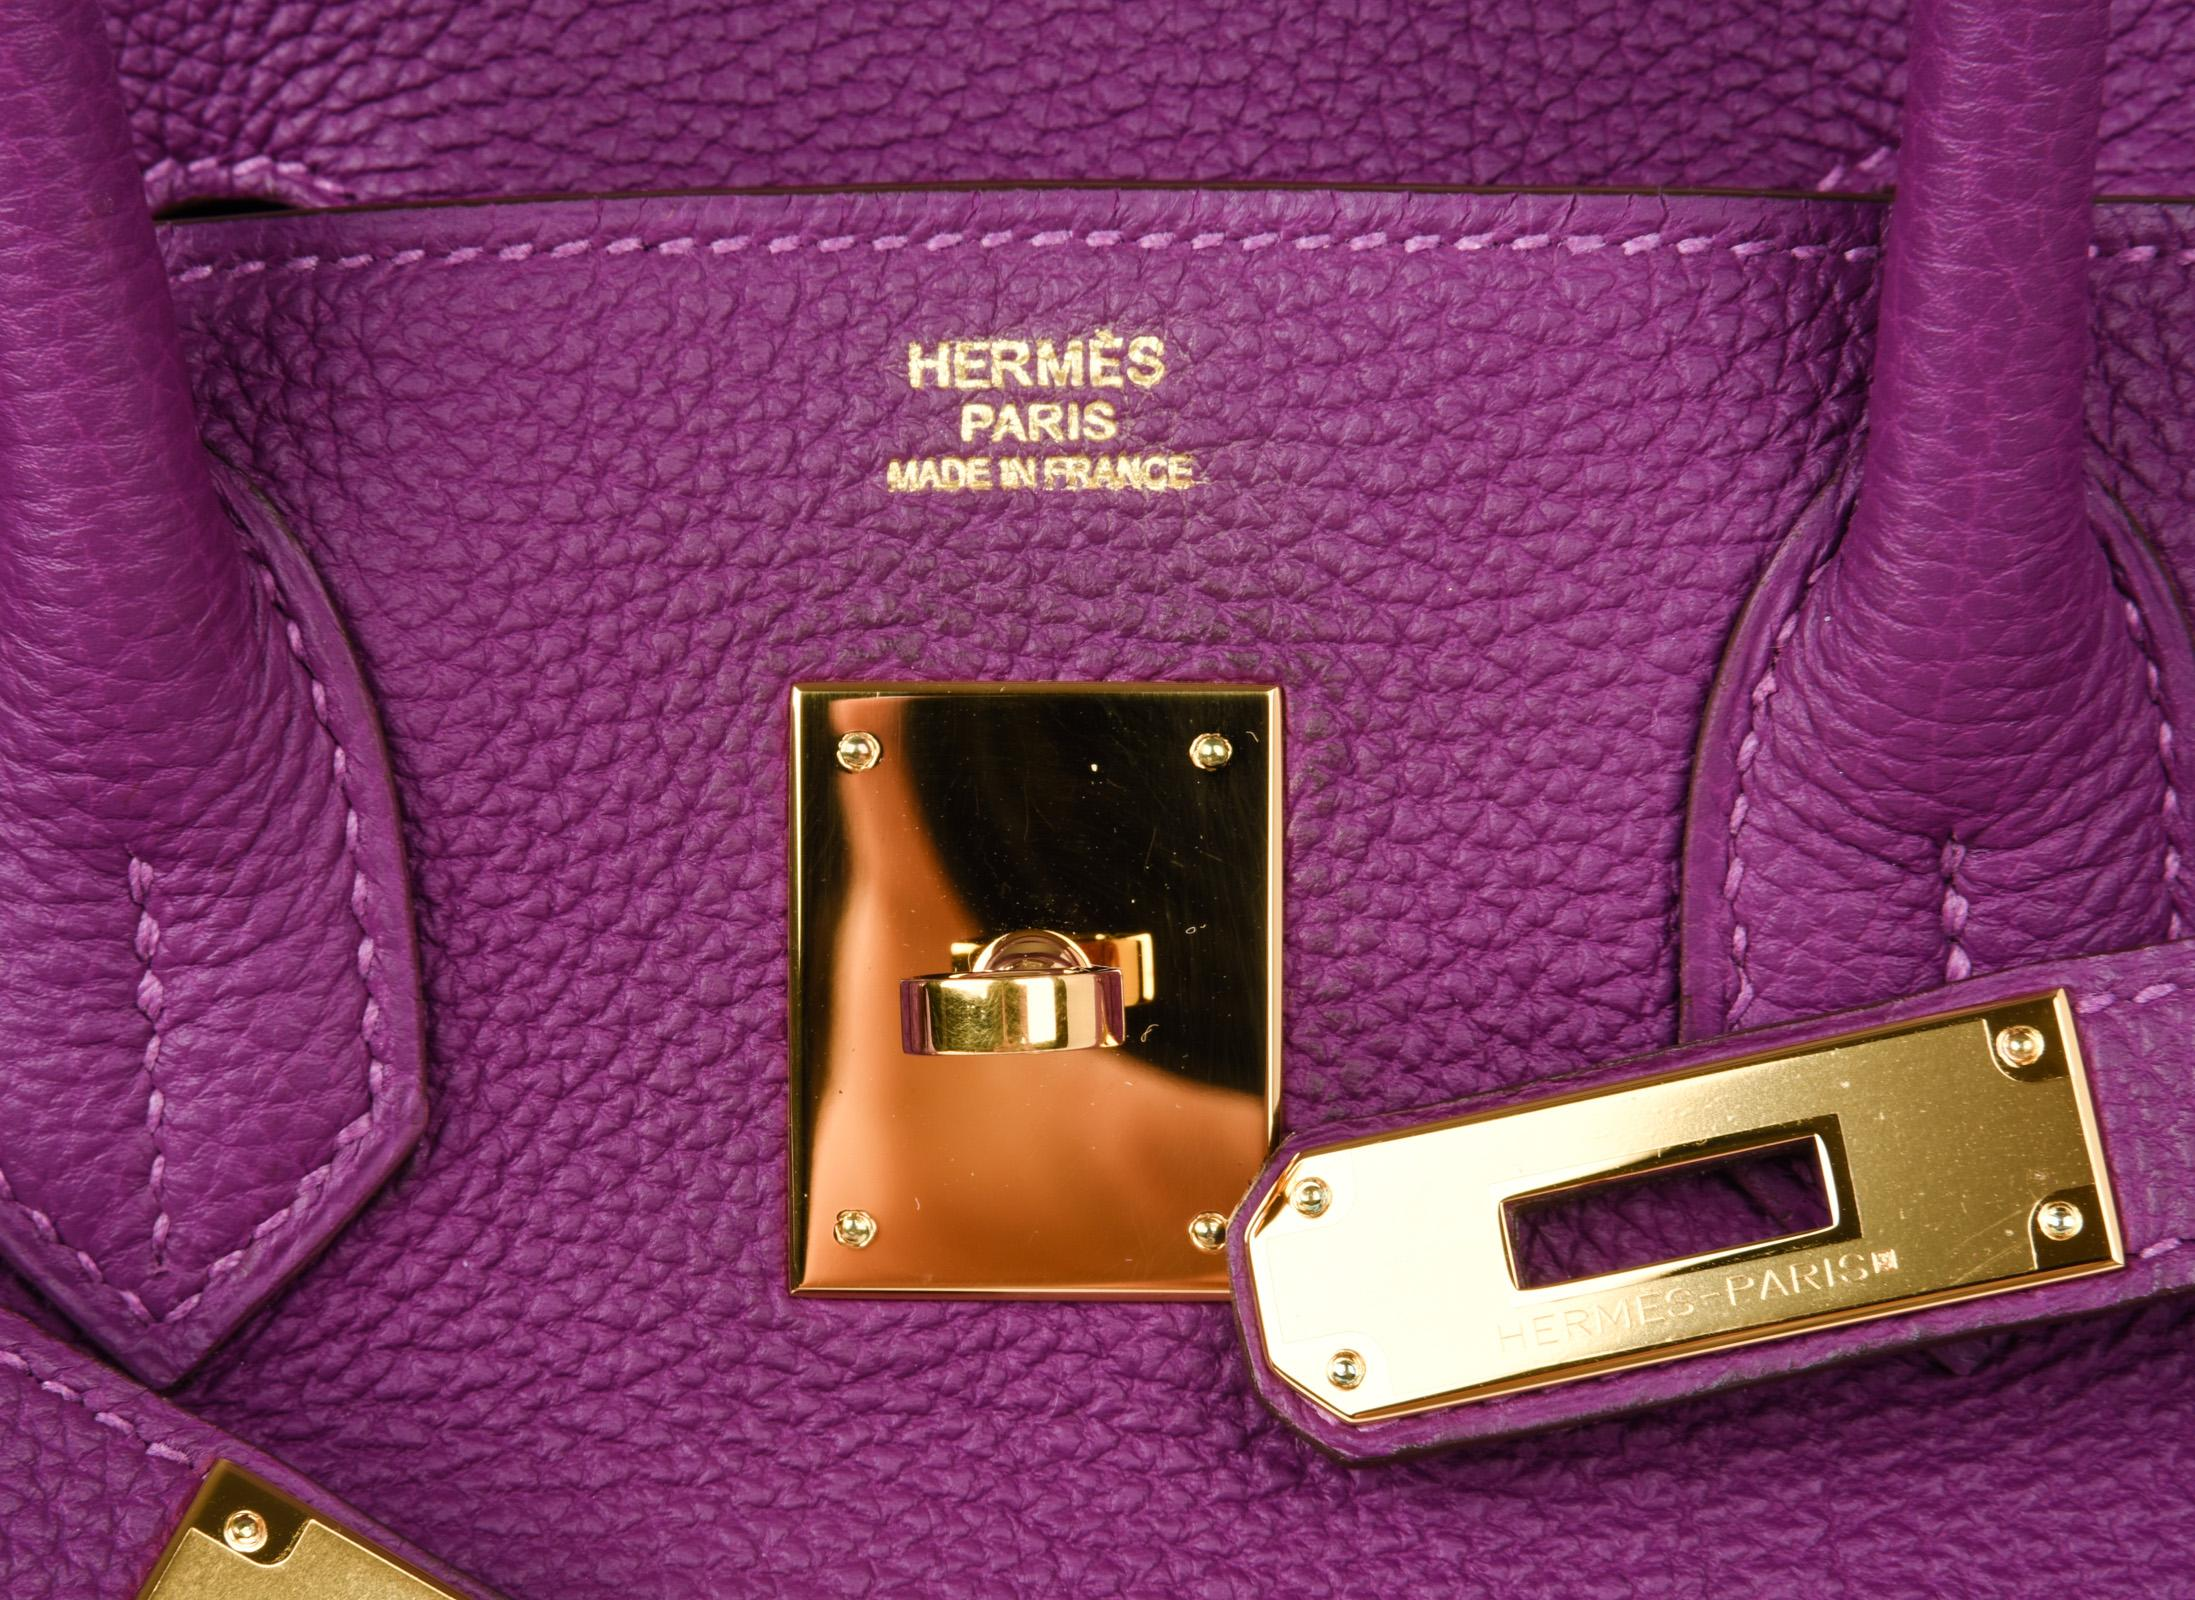 d9b75b7f5eea Hermes Birkin 30 Anemone Purple Togo Gold Hardware Exotic Beauty For Sale  at 1stdibs